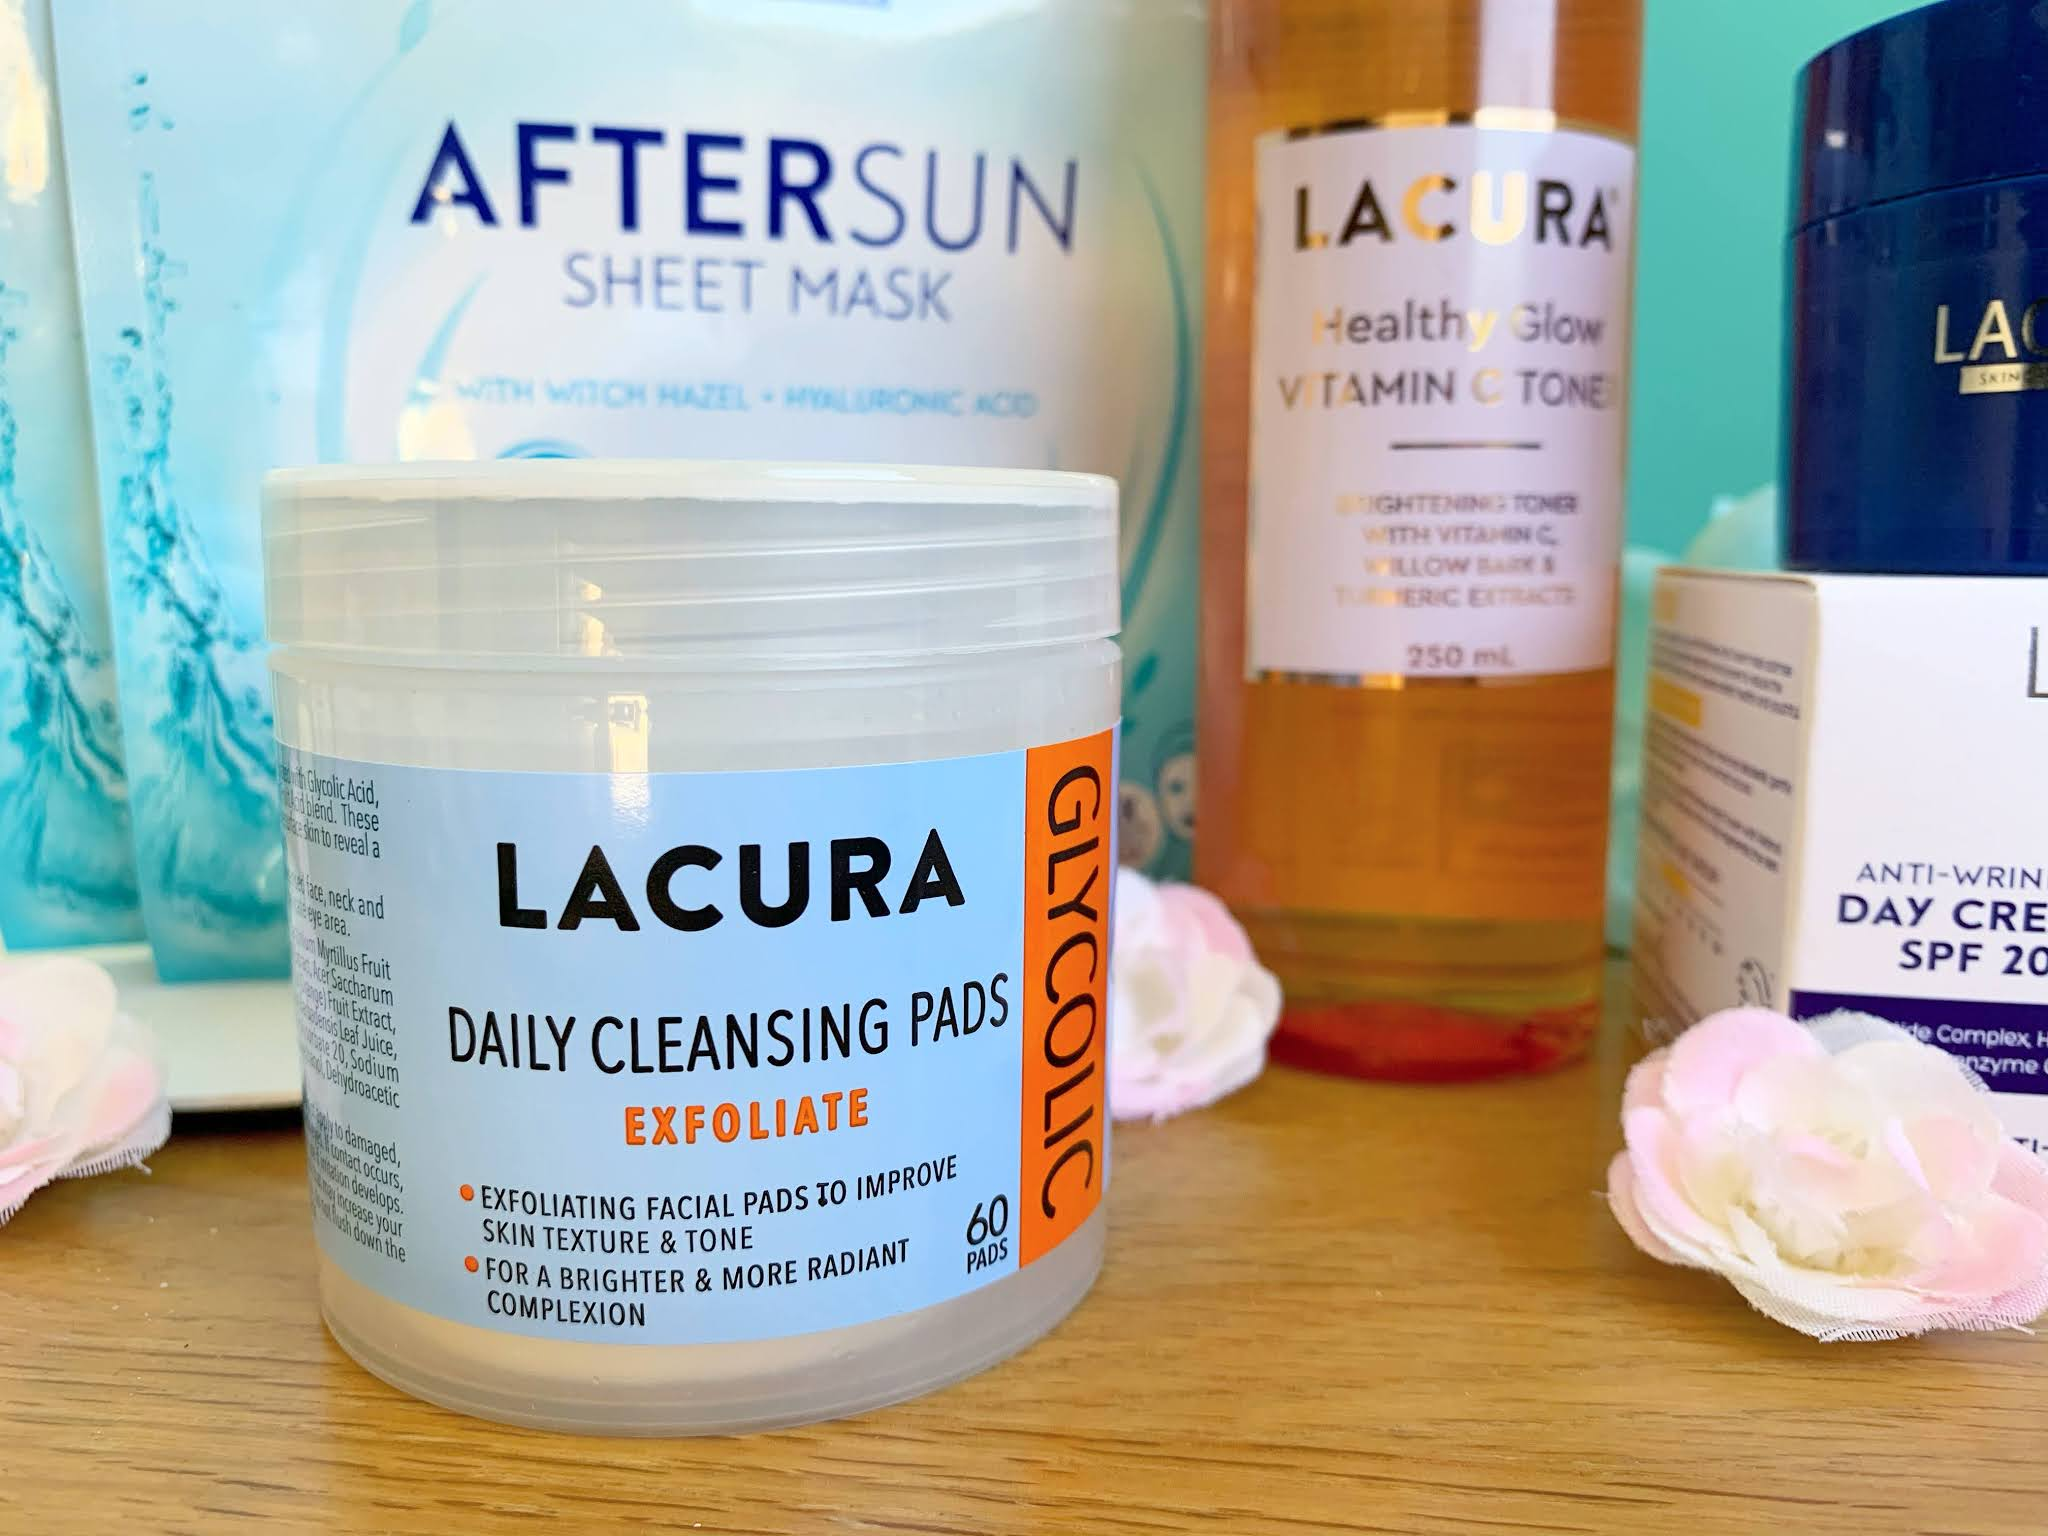 Lacura Glycolic Daily Cleansing Pads on a table